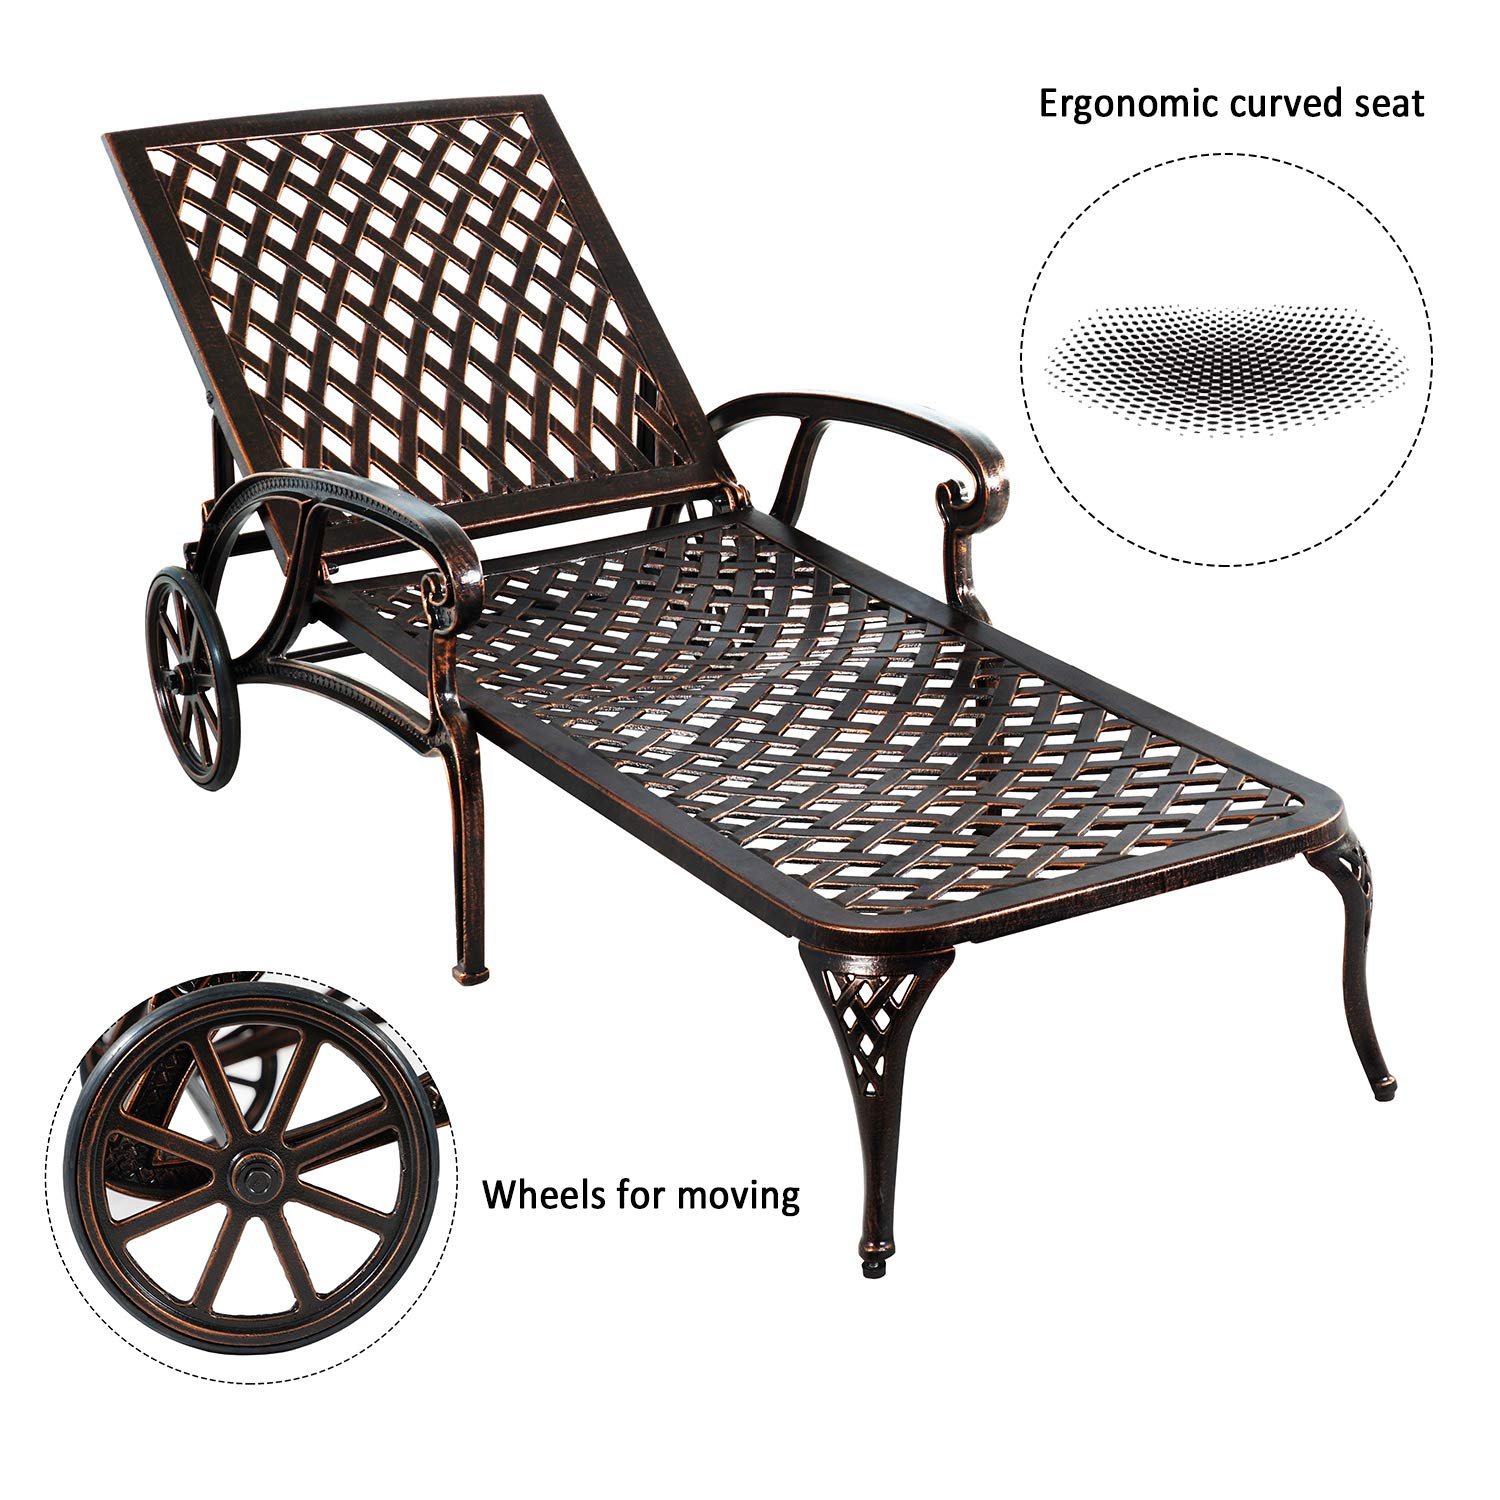 HOMEFUN Chaise Outdoor Aluminum Wheels Lounges Chair Adjustable Reclining Patio Furniture Set, Pack of 2 Antique Bronze , 2PC